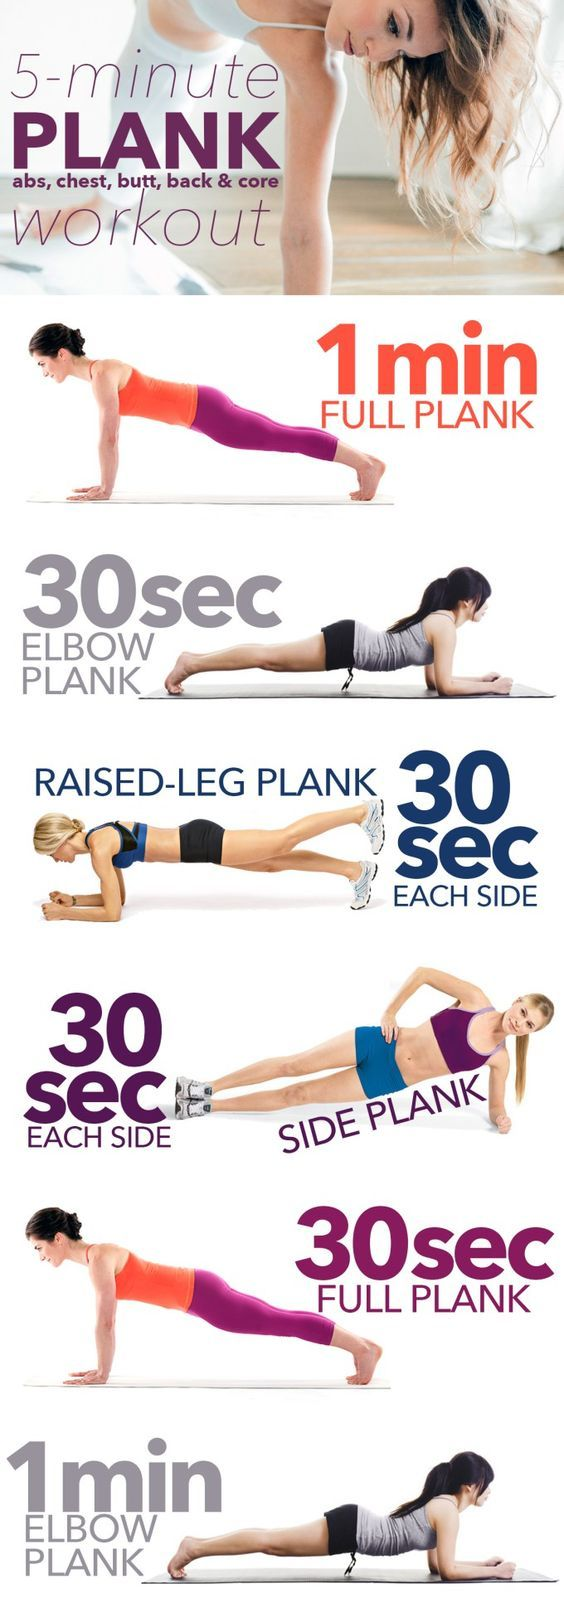 Plank is one of the most effective total-body moves, so here's a five-minute…